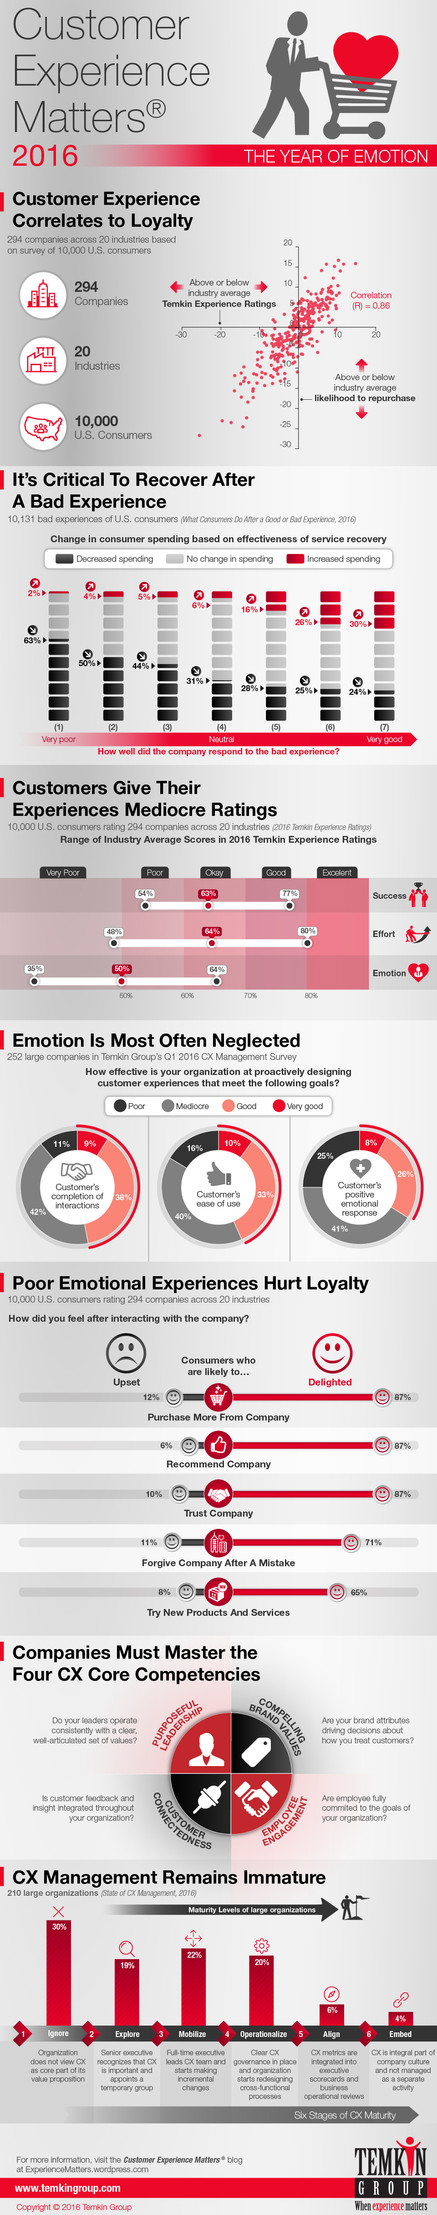 The Year of Emotion